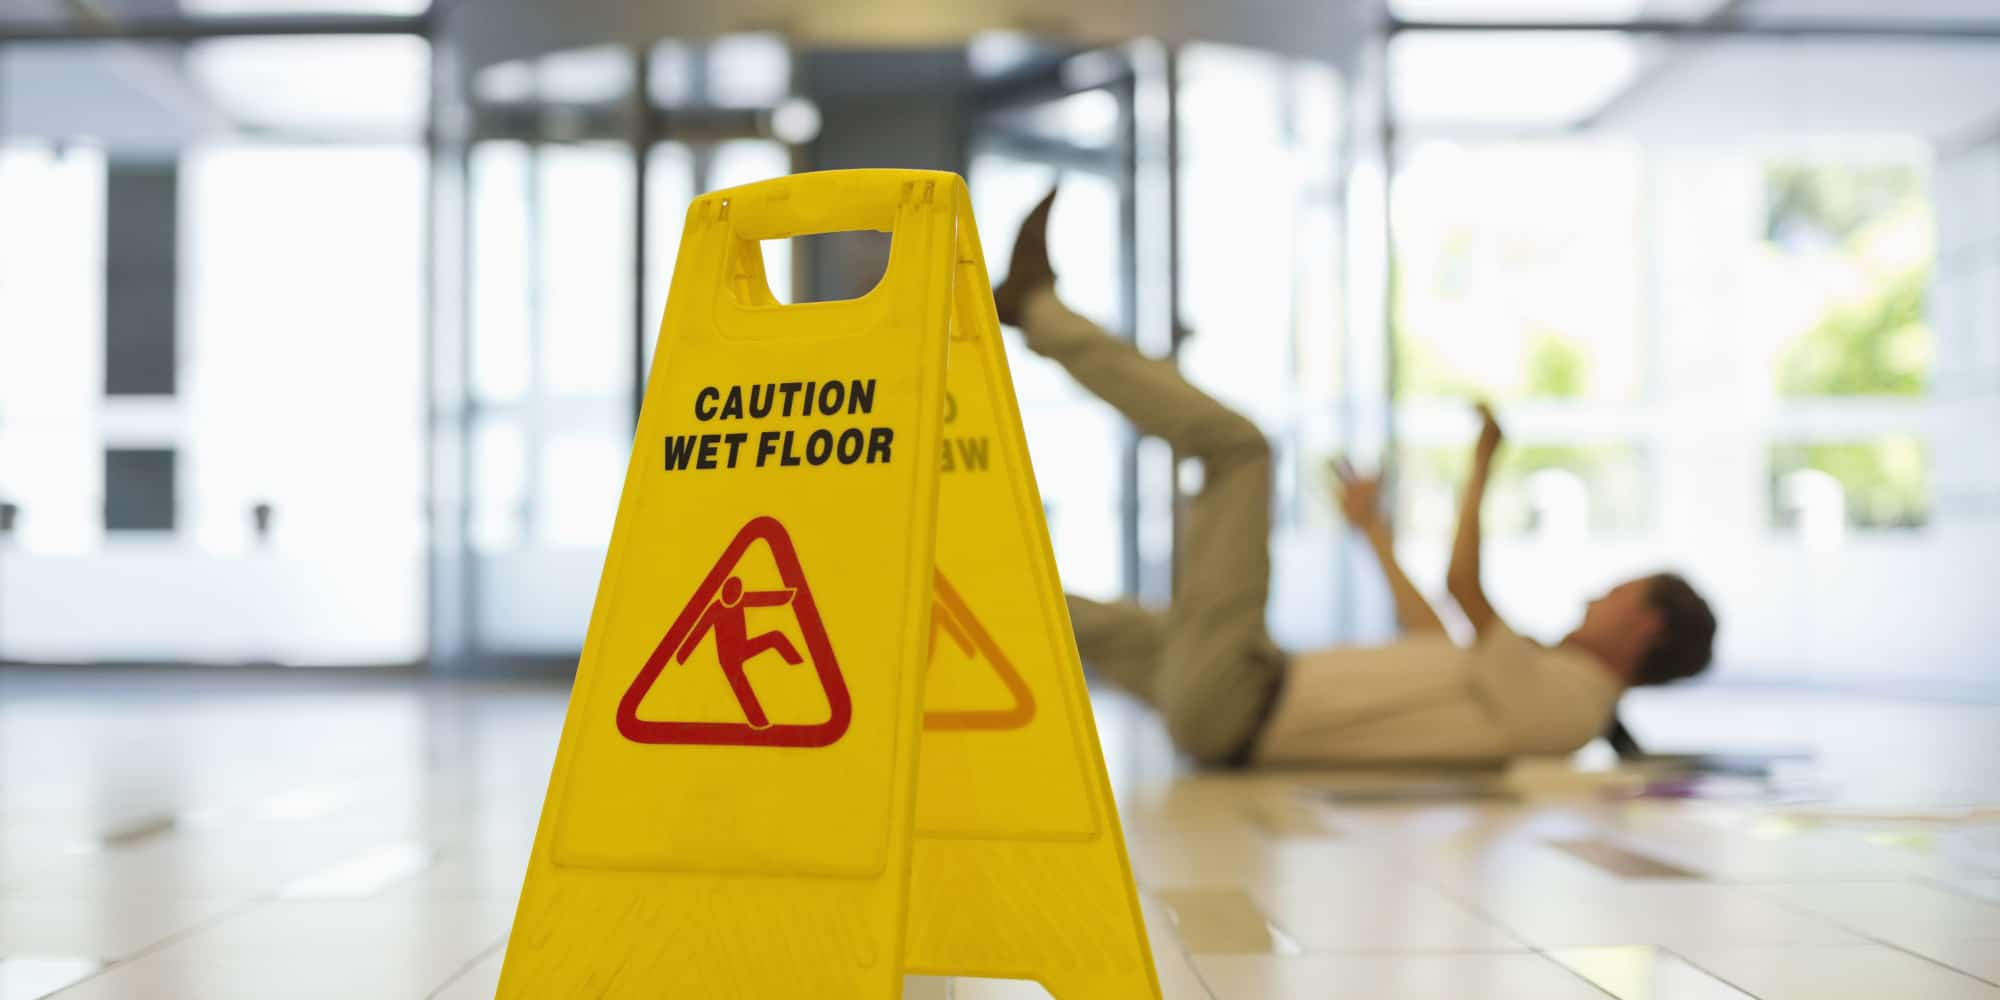 Slip and Fall Accidents in Cluttered Areas